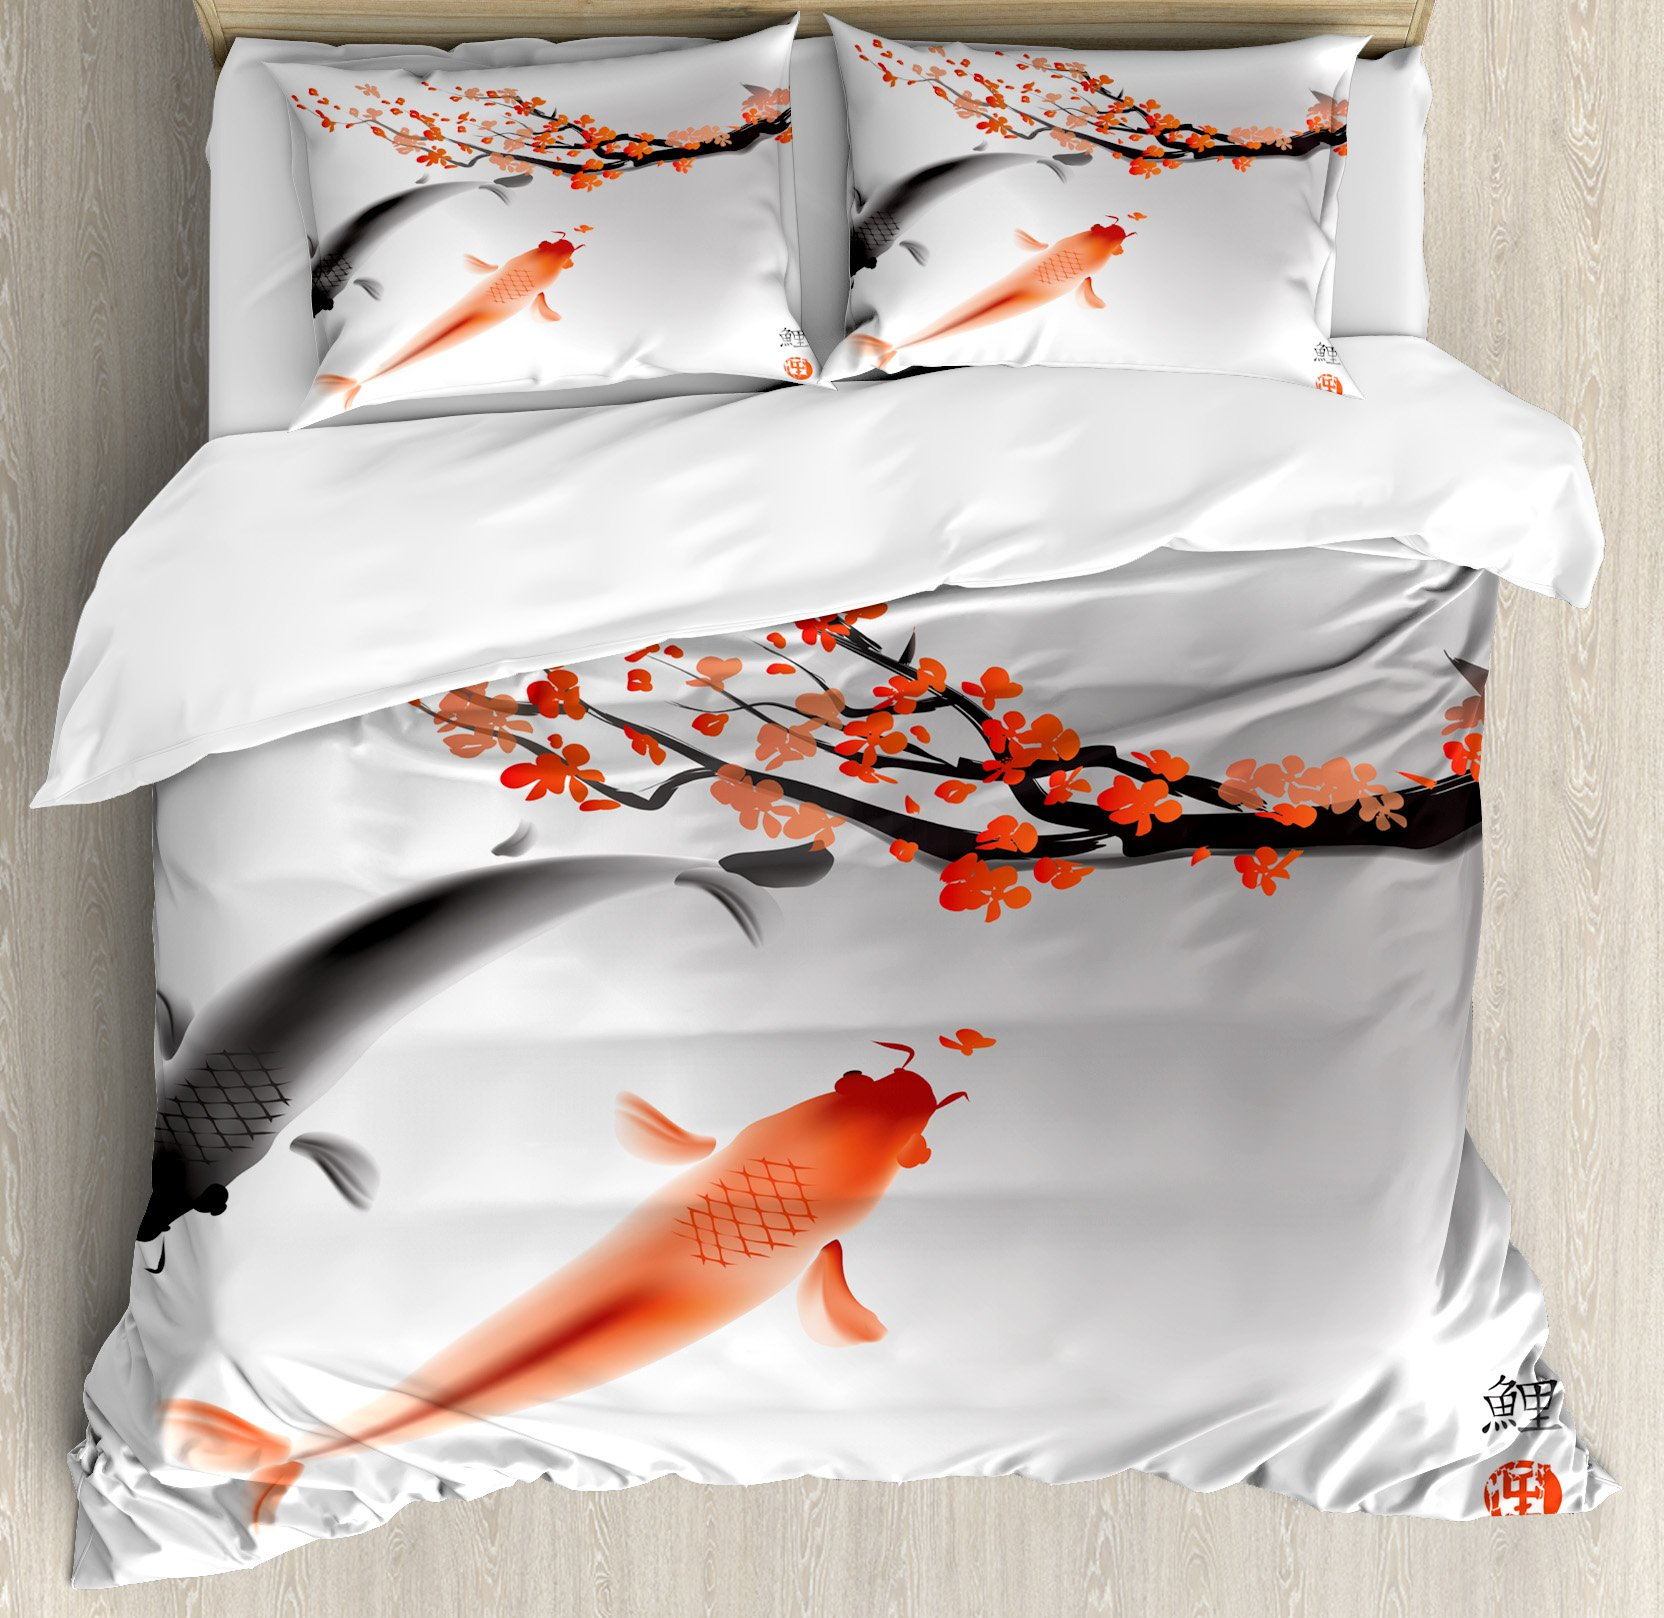 Ambesonne Japanese Duvet Cover Set King Size by, Koi Carp Fish Couple Swimming with Cherry Blossom Sakura Branch Culture Design, Decorative 3 Piece Bedding Set with 2 Pillow Shams, Orange Grey